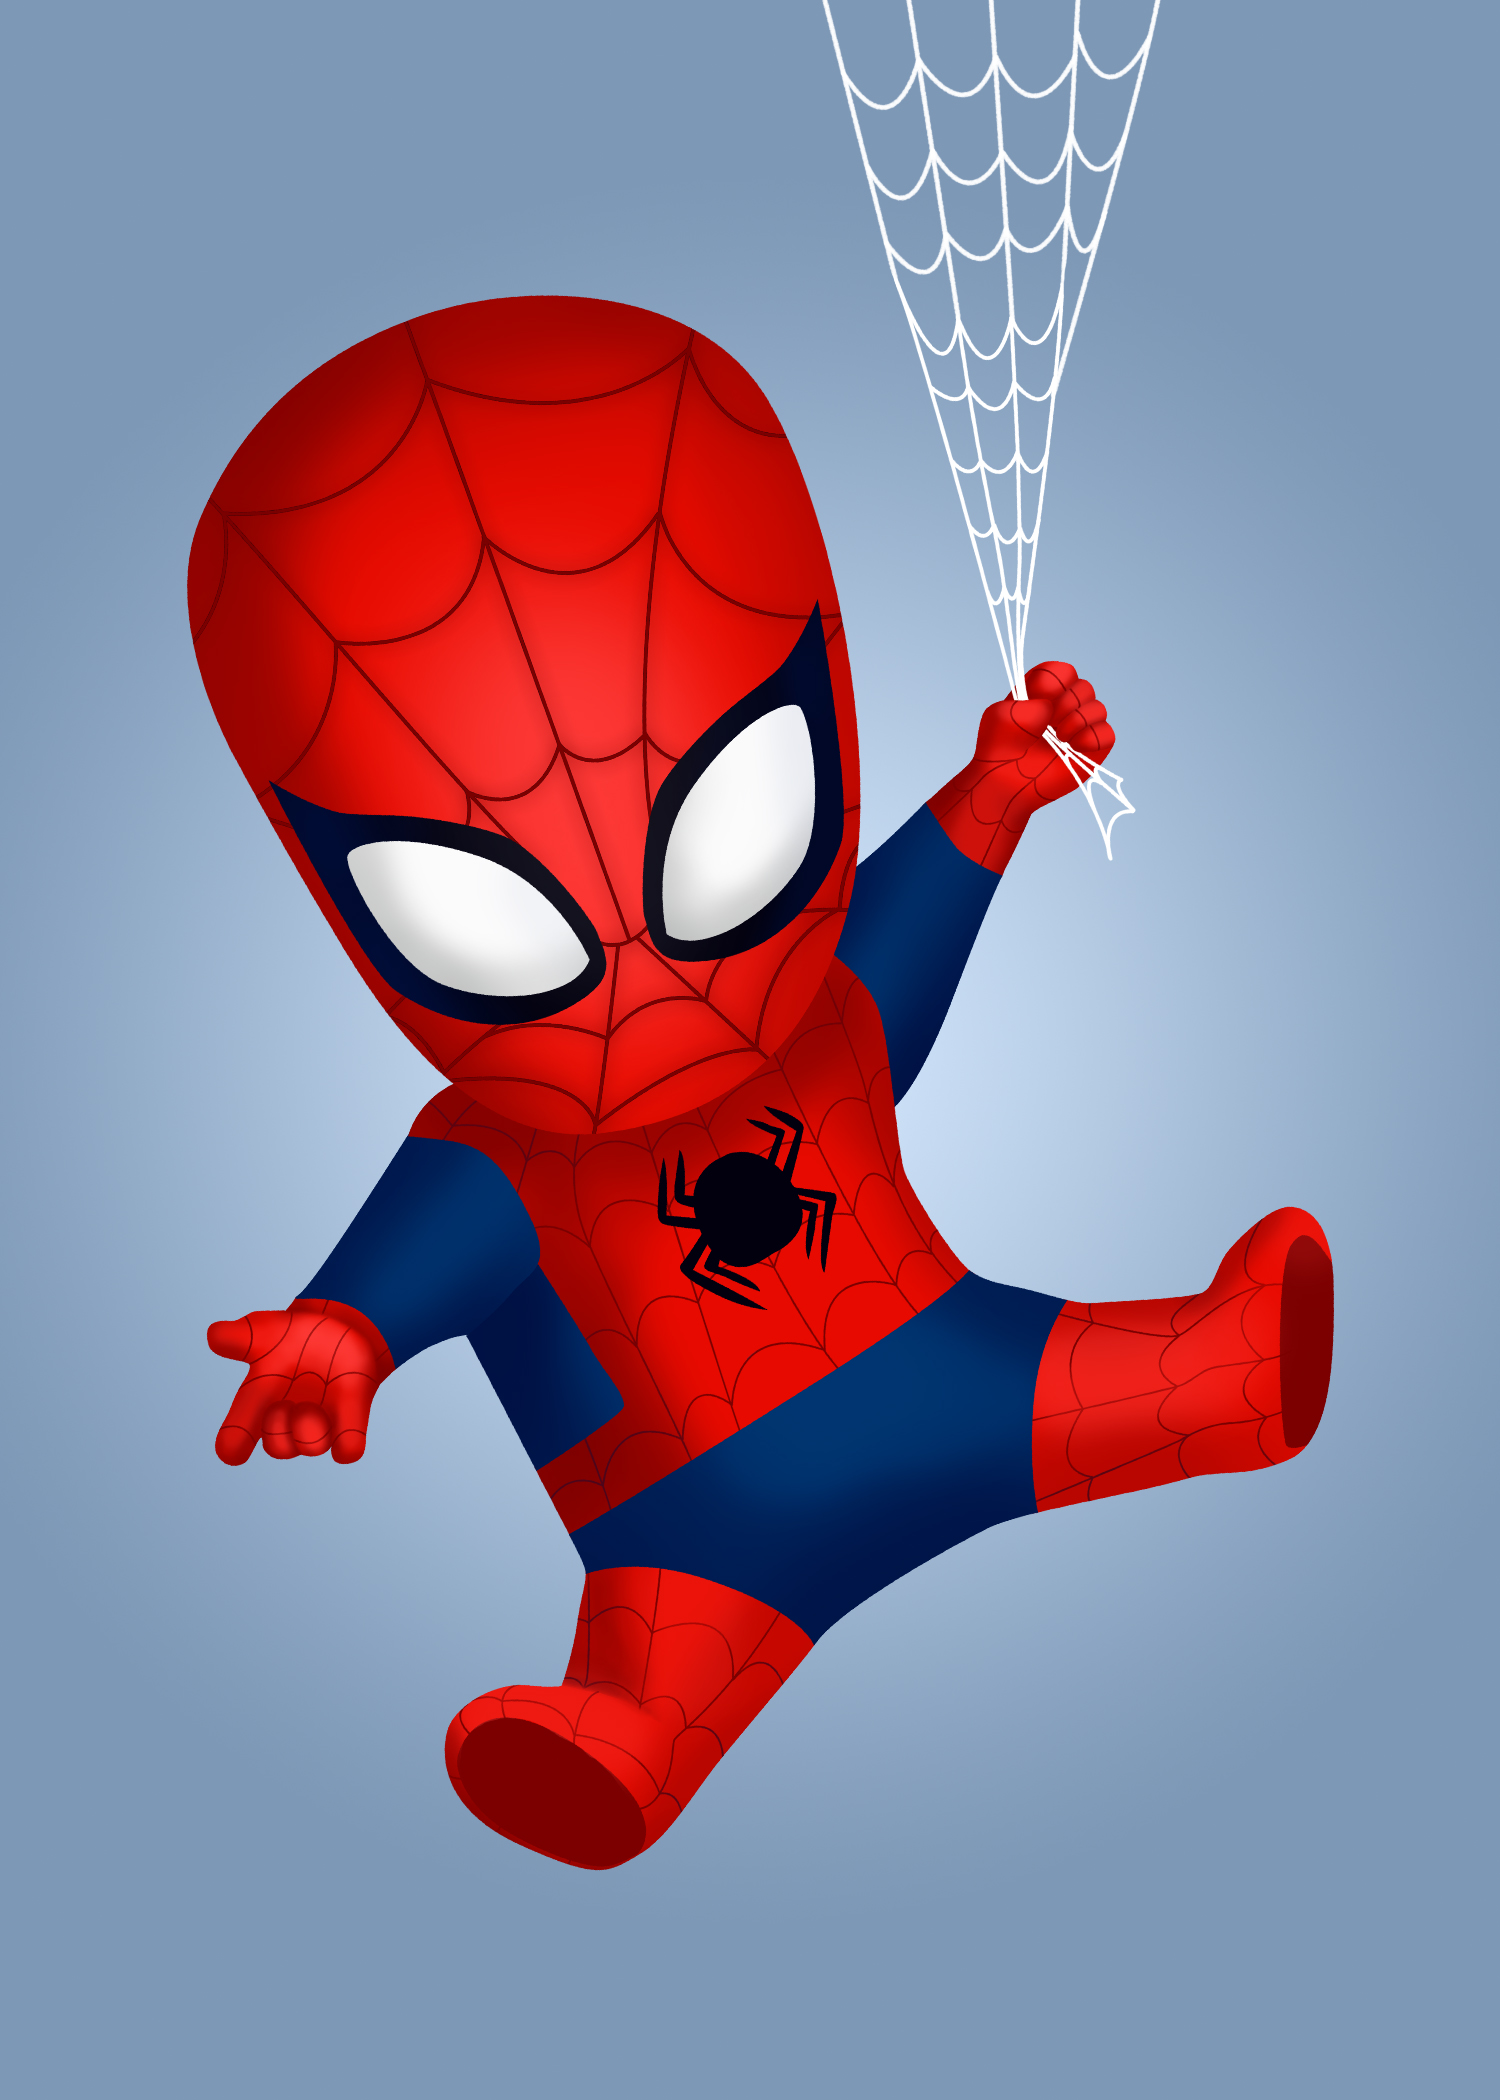 Chibi Spiderman. 2017.